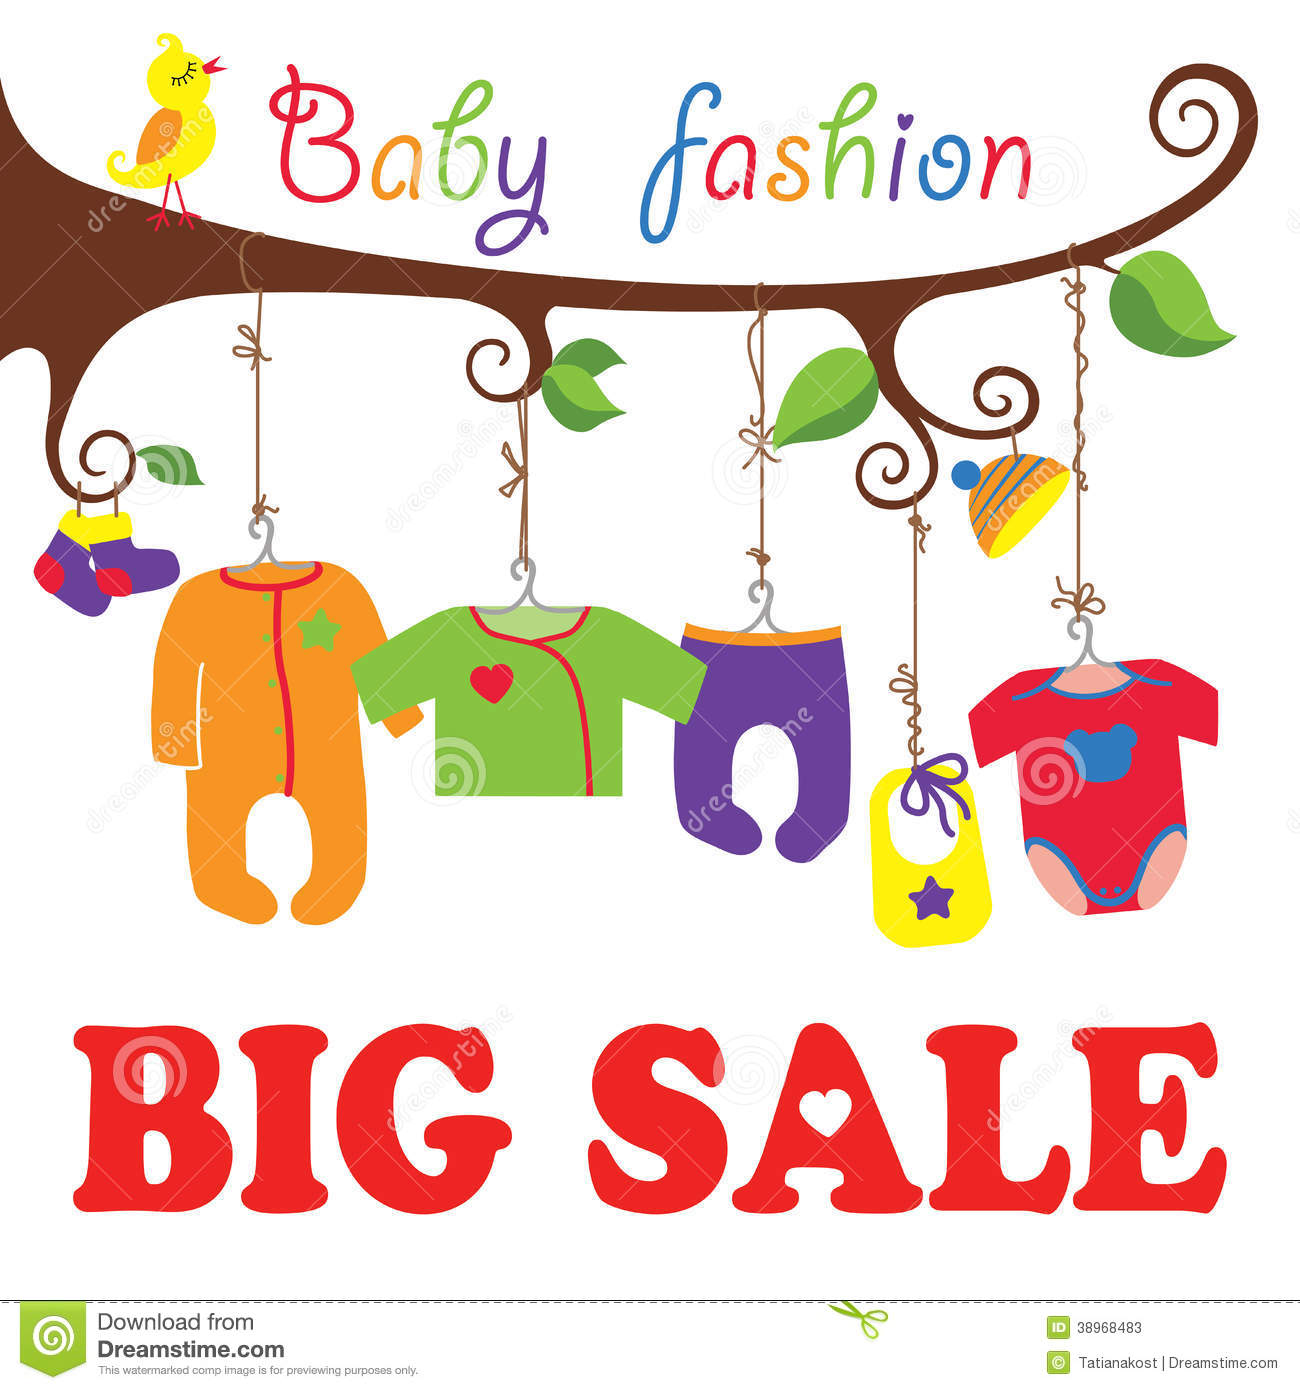 Shop clearance at evildownloadersuper74k.ga Shop OshKosh B'gosh, the most trusted name in kids and baby clothes, plus our world famous overalls. This is the date that this item or a similar item was originally offered for sale at the MSRP.